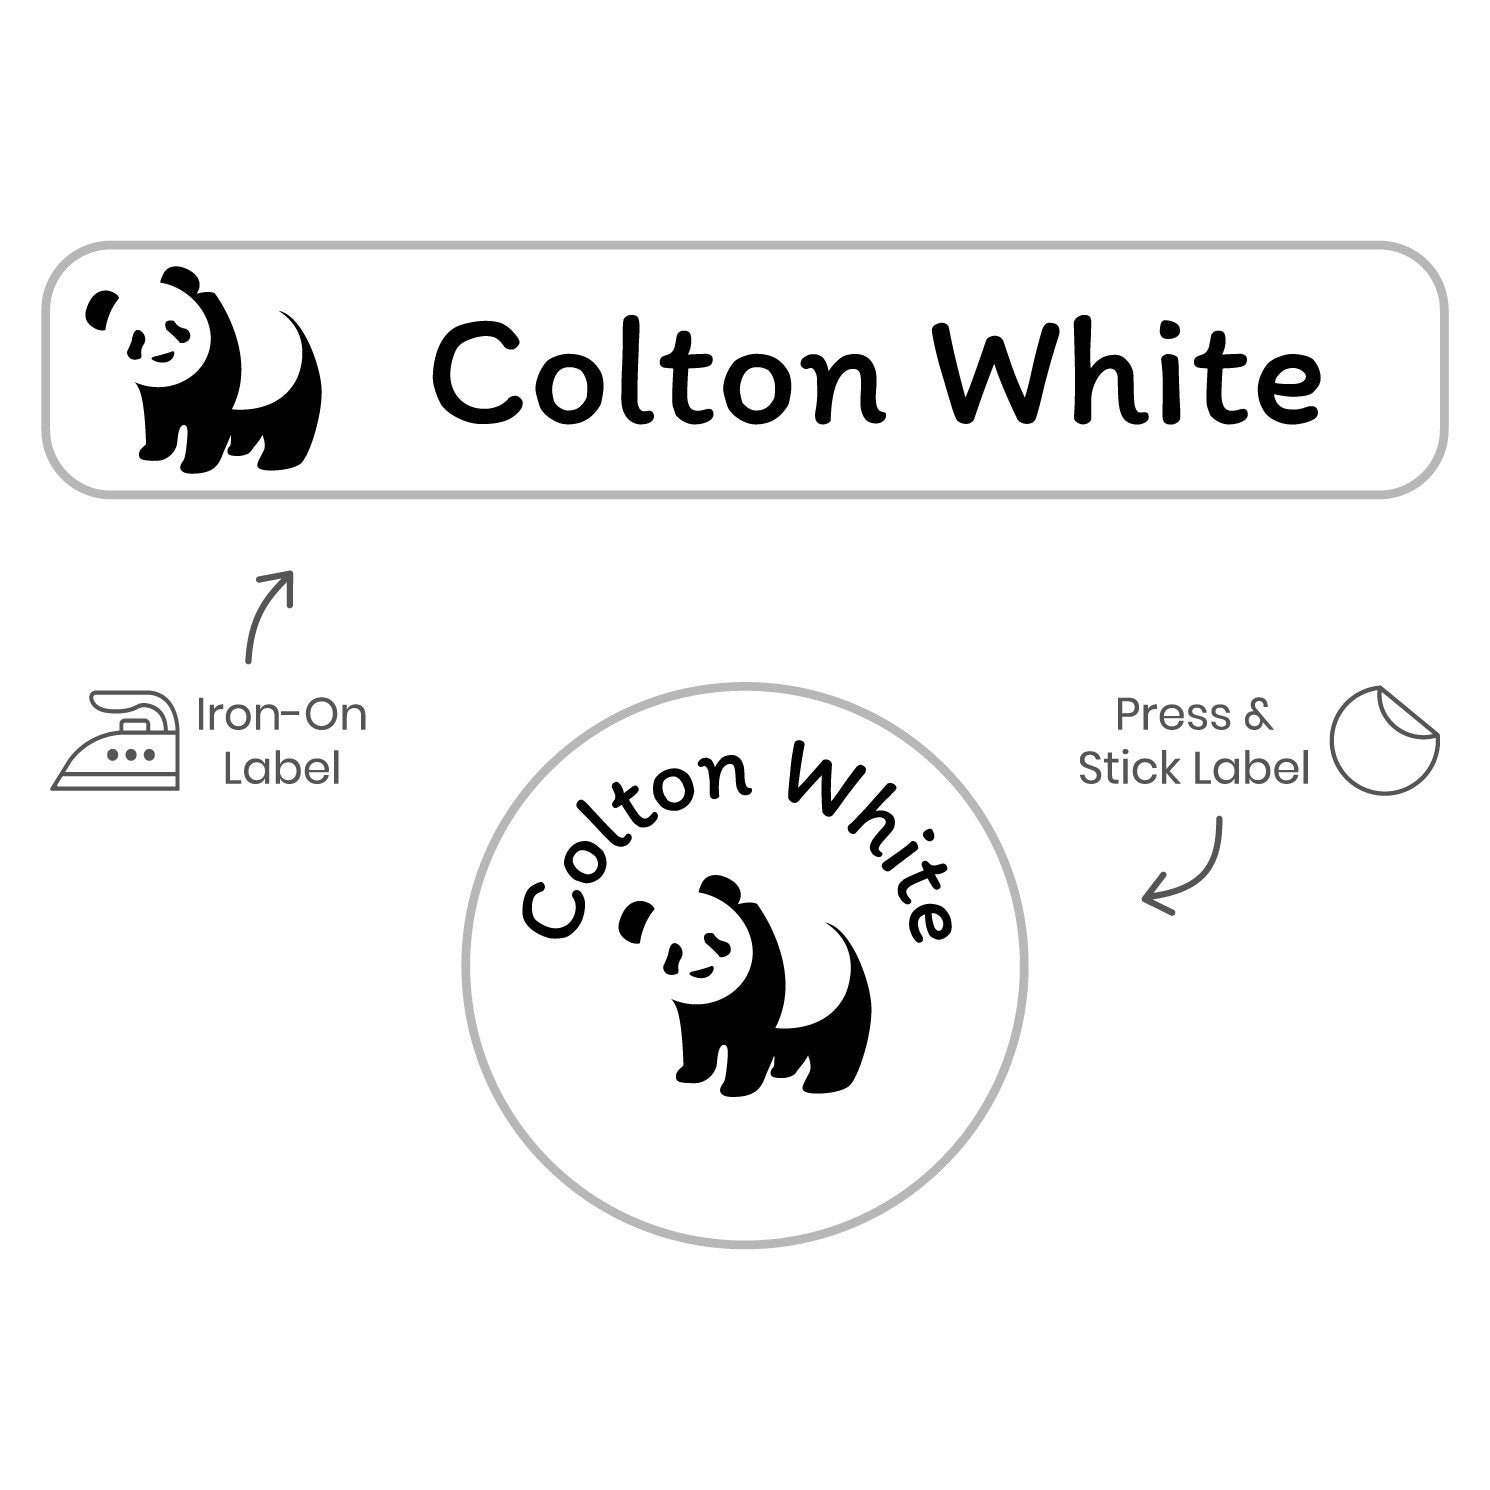 dryer safe labels with panda design